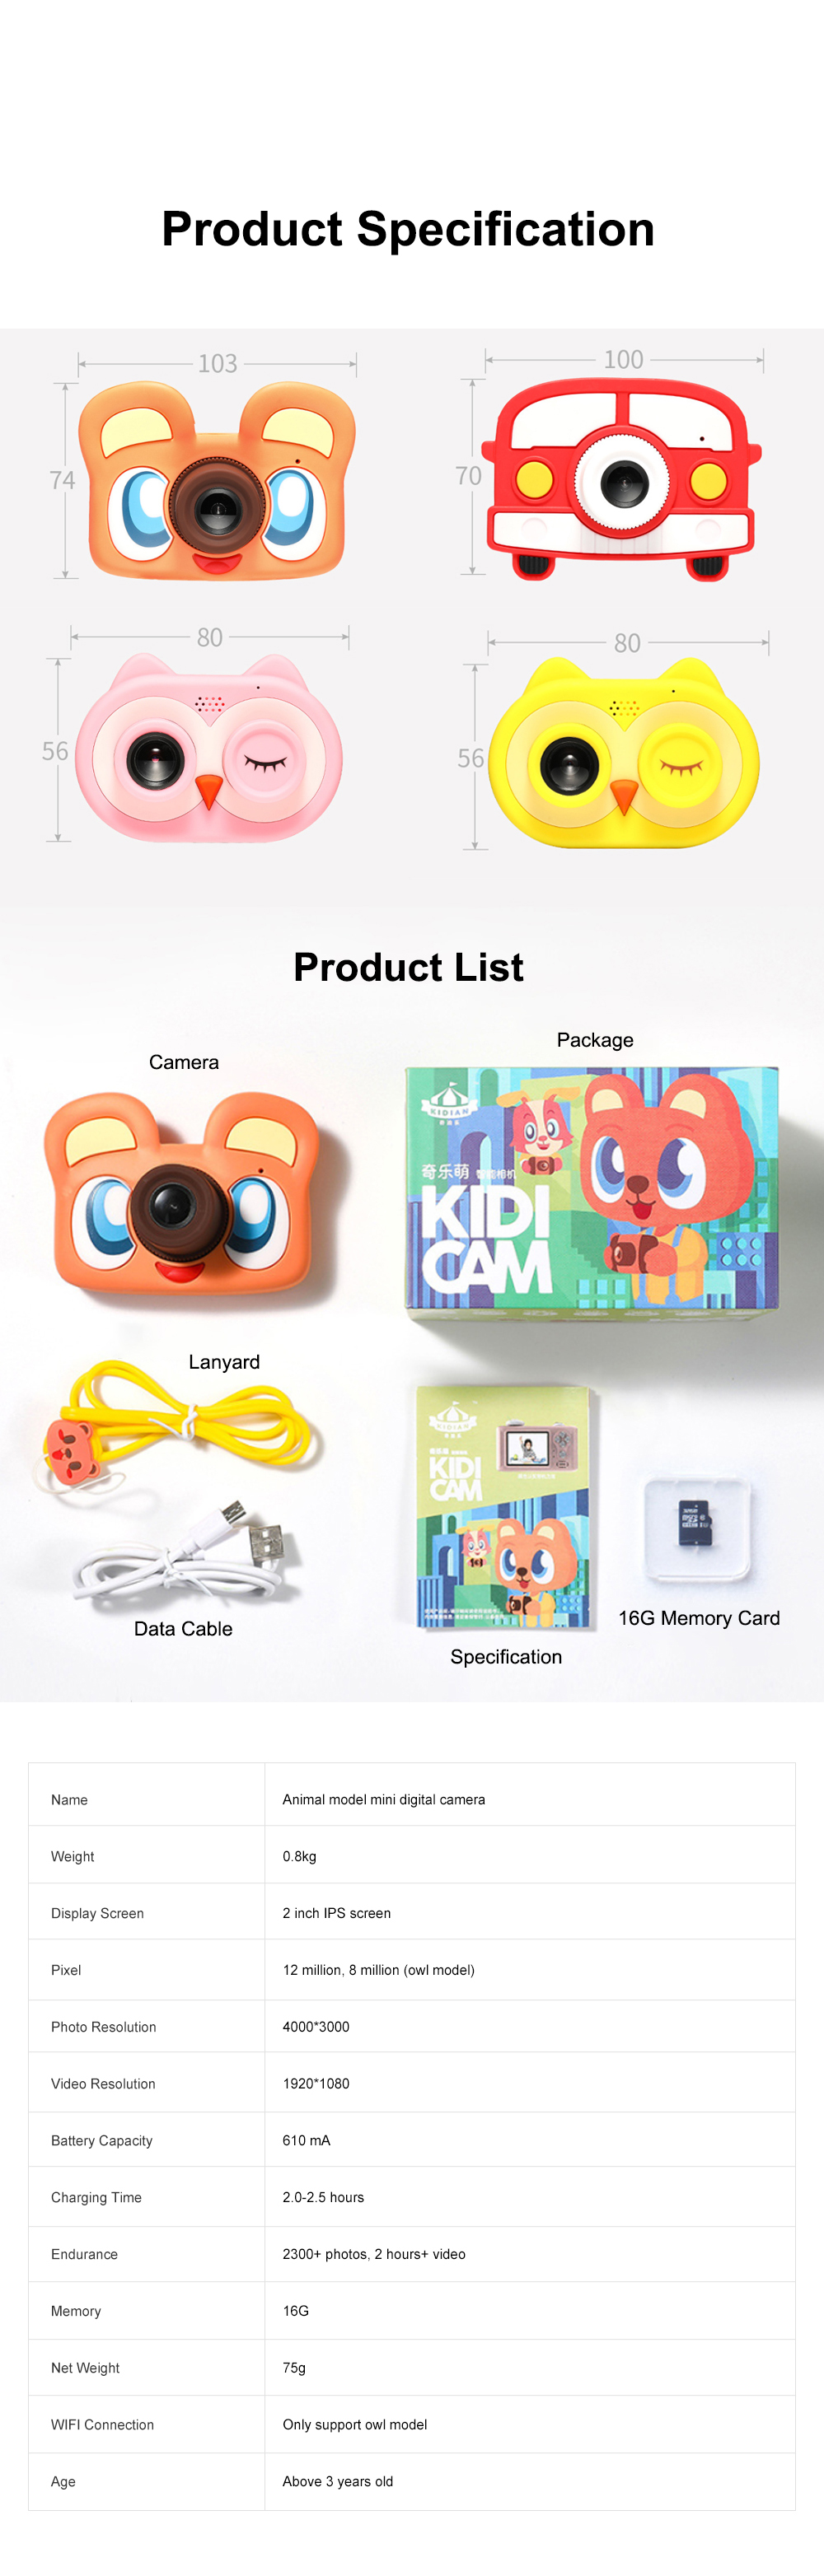 Cute Animal Model Mini Digital Camera for Children WIth Breaking-proof Silicone Shell 16G 1200W HD Pixel 2.0 inch Video Recorder Birthday Present 10